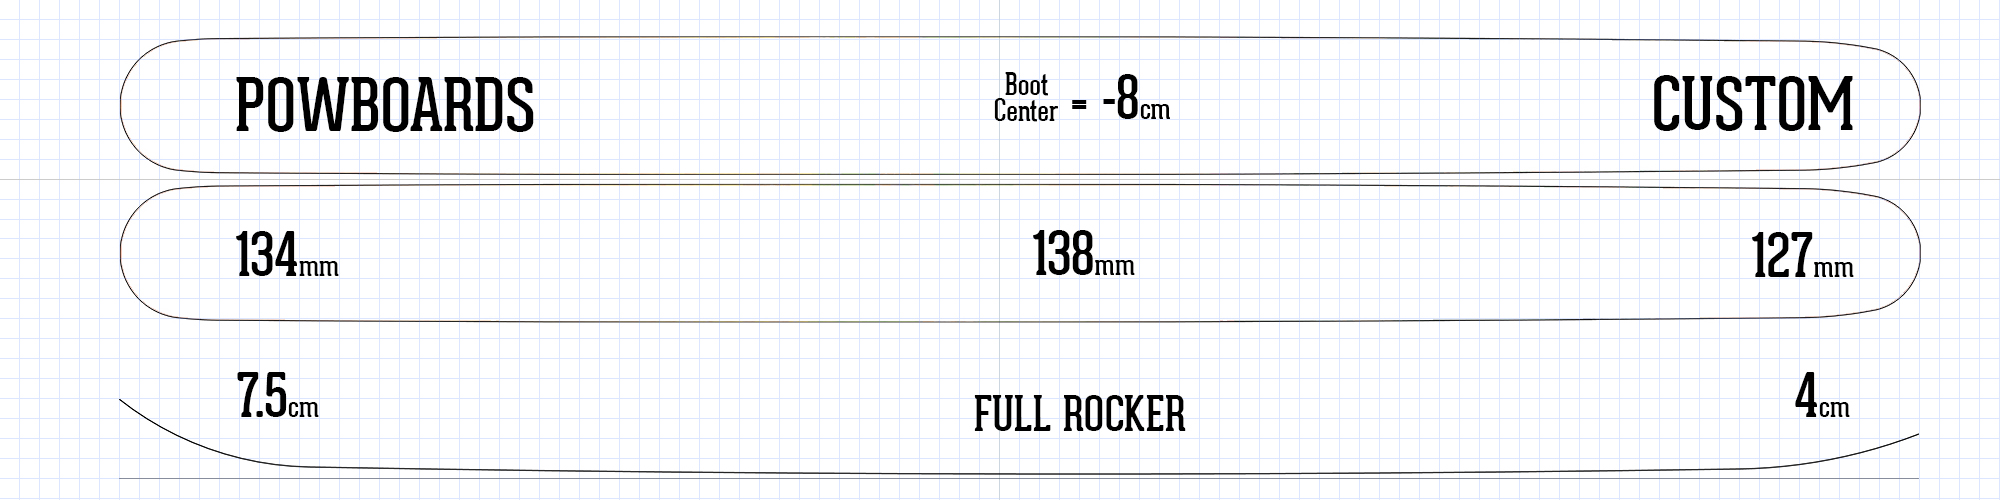 Powderboards ski information rocker camber profile